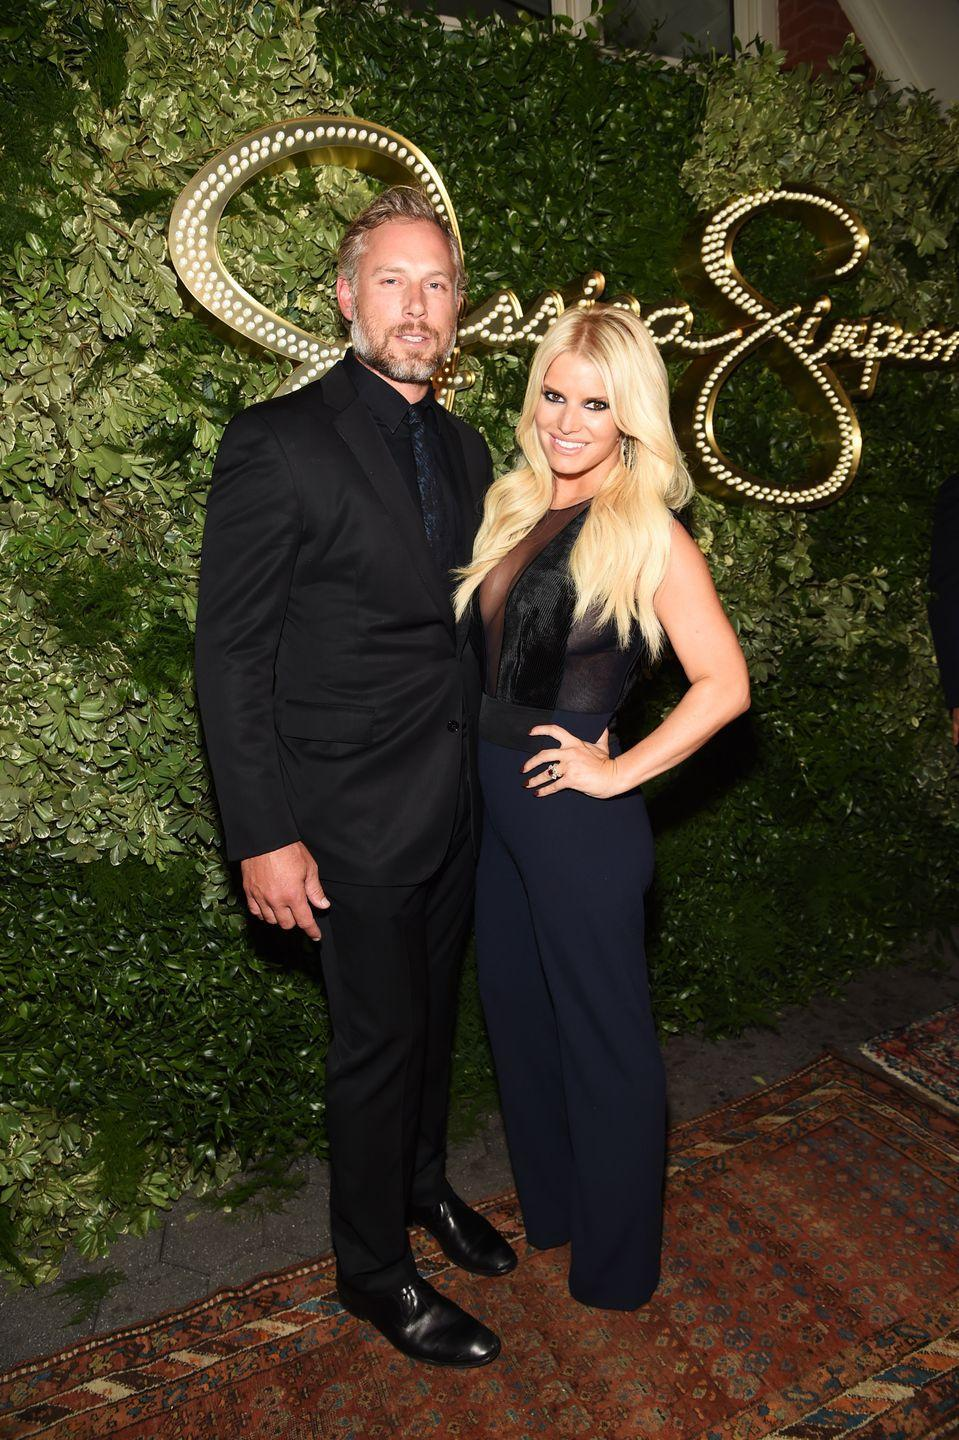 "<p>Jessica Simpson fell in love with football player Eric Johnson while he was going through a divorce in 2010. A year later, they were engaged, but the <a href=""https://people.com/celebrity/jessica-simpson-marries-eric-johnson-inside-her-wedding-ceremony/"" rel=""nofollow noopener"" target=""_blank"" data-ylk=""slk:wedding didn't happen until 2014"" class=""link rapid-noclick-resp"">wedding didn't happen until 2014</a>. Now, they're a beautiful family of five.</p>"